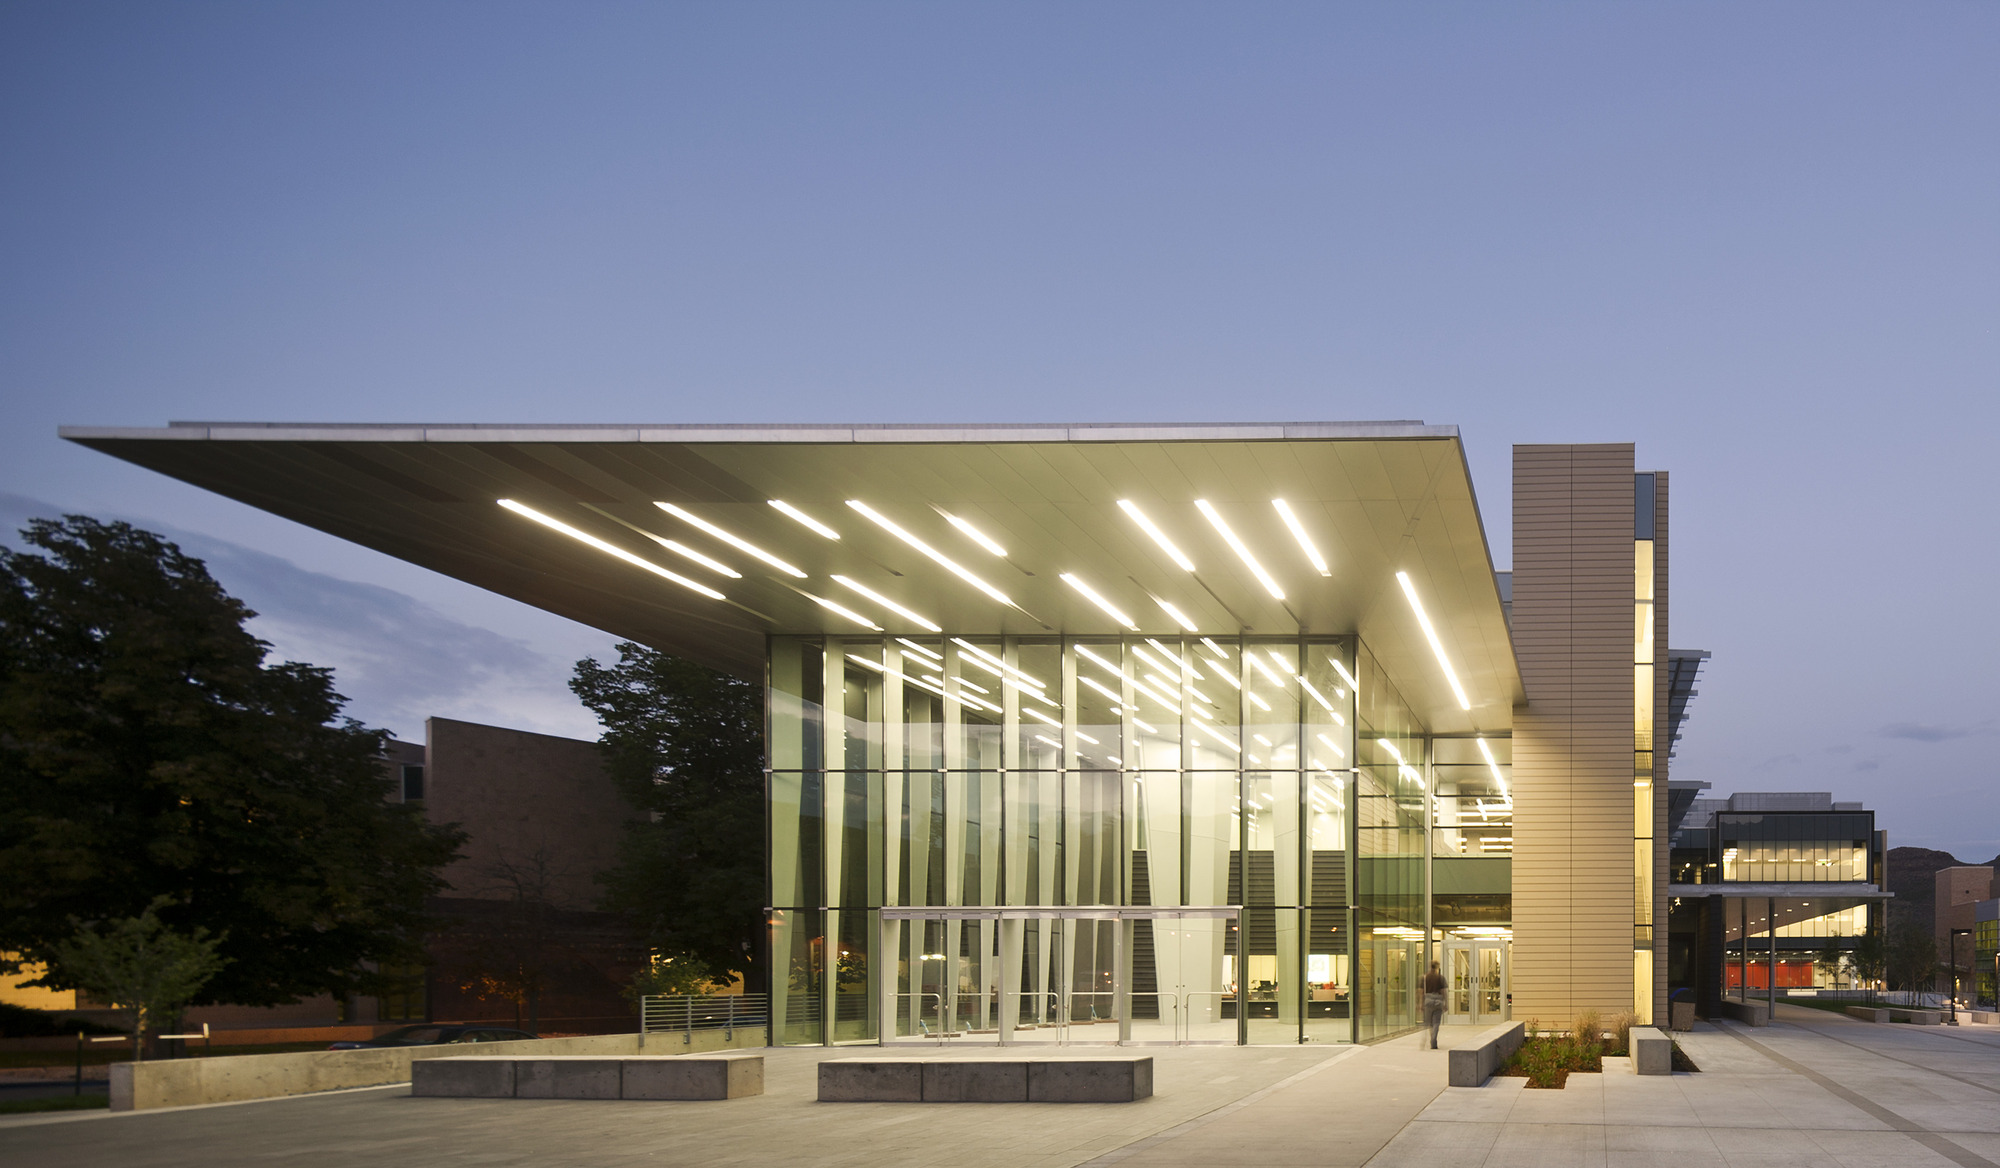 Marquez Hall at Colorado School of Mines | Bohlin Cywinski Jackson